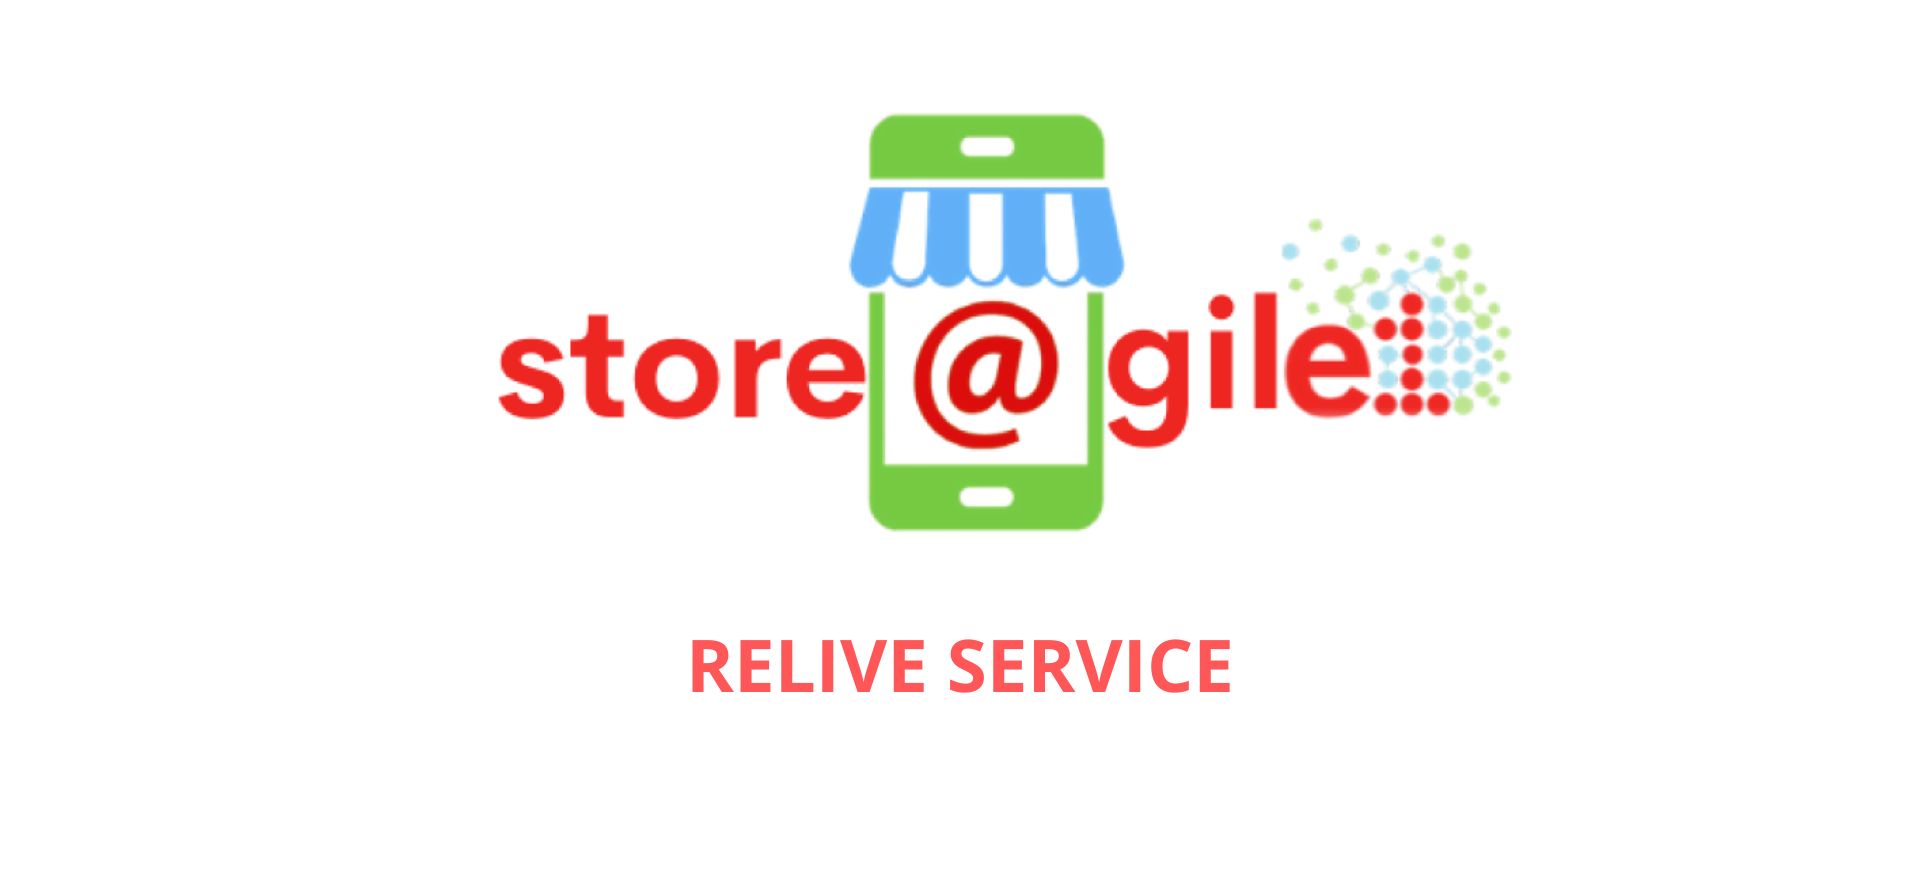 Relive Service